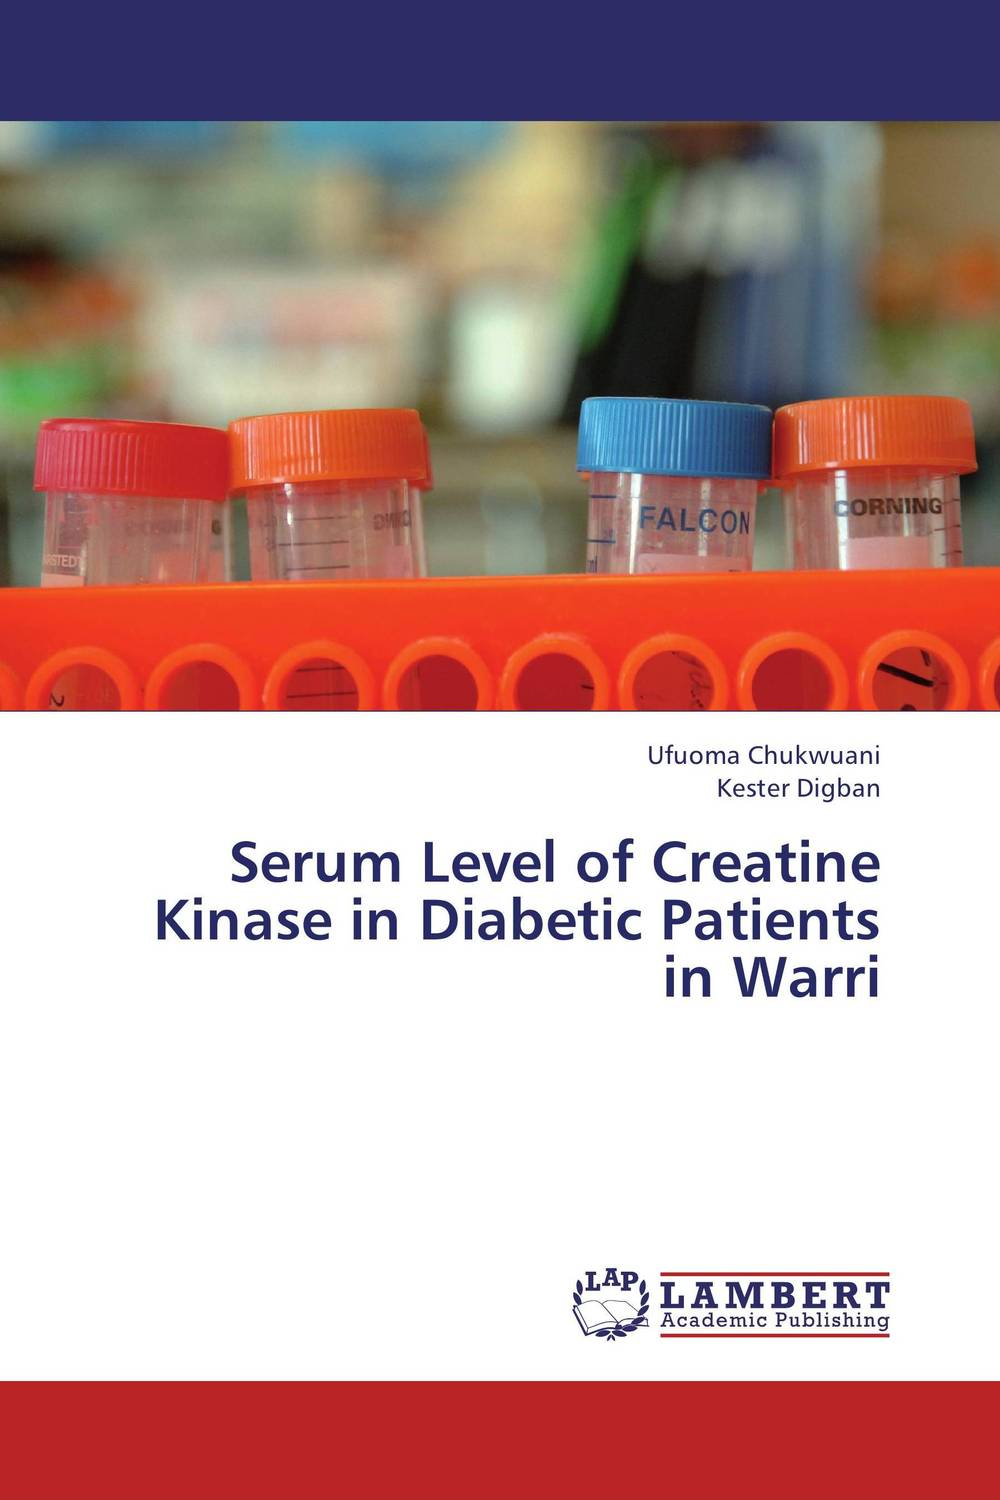 Serum Level of Creatine Kinase in Diabetic Patients in Warri протеин 4uze протеин 4uze creatine сливочная карамель 750г